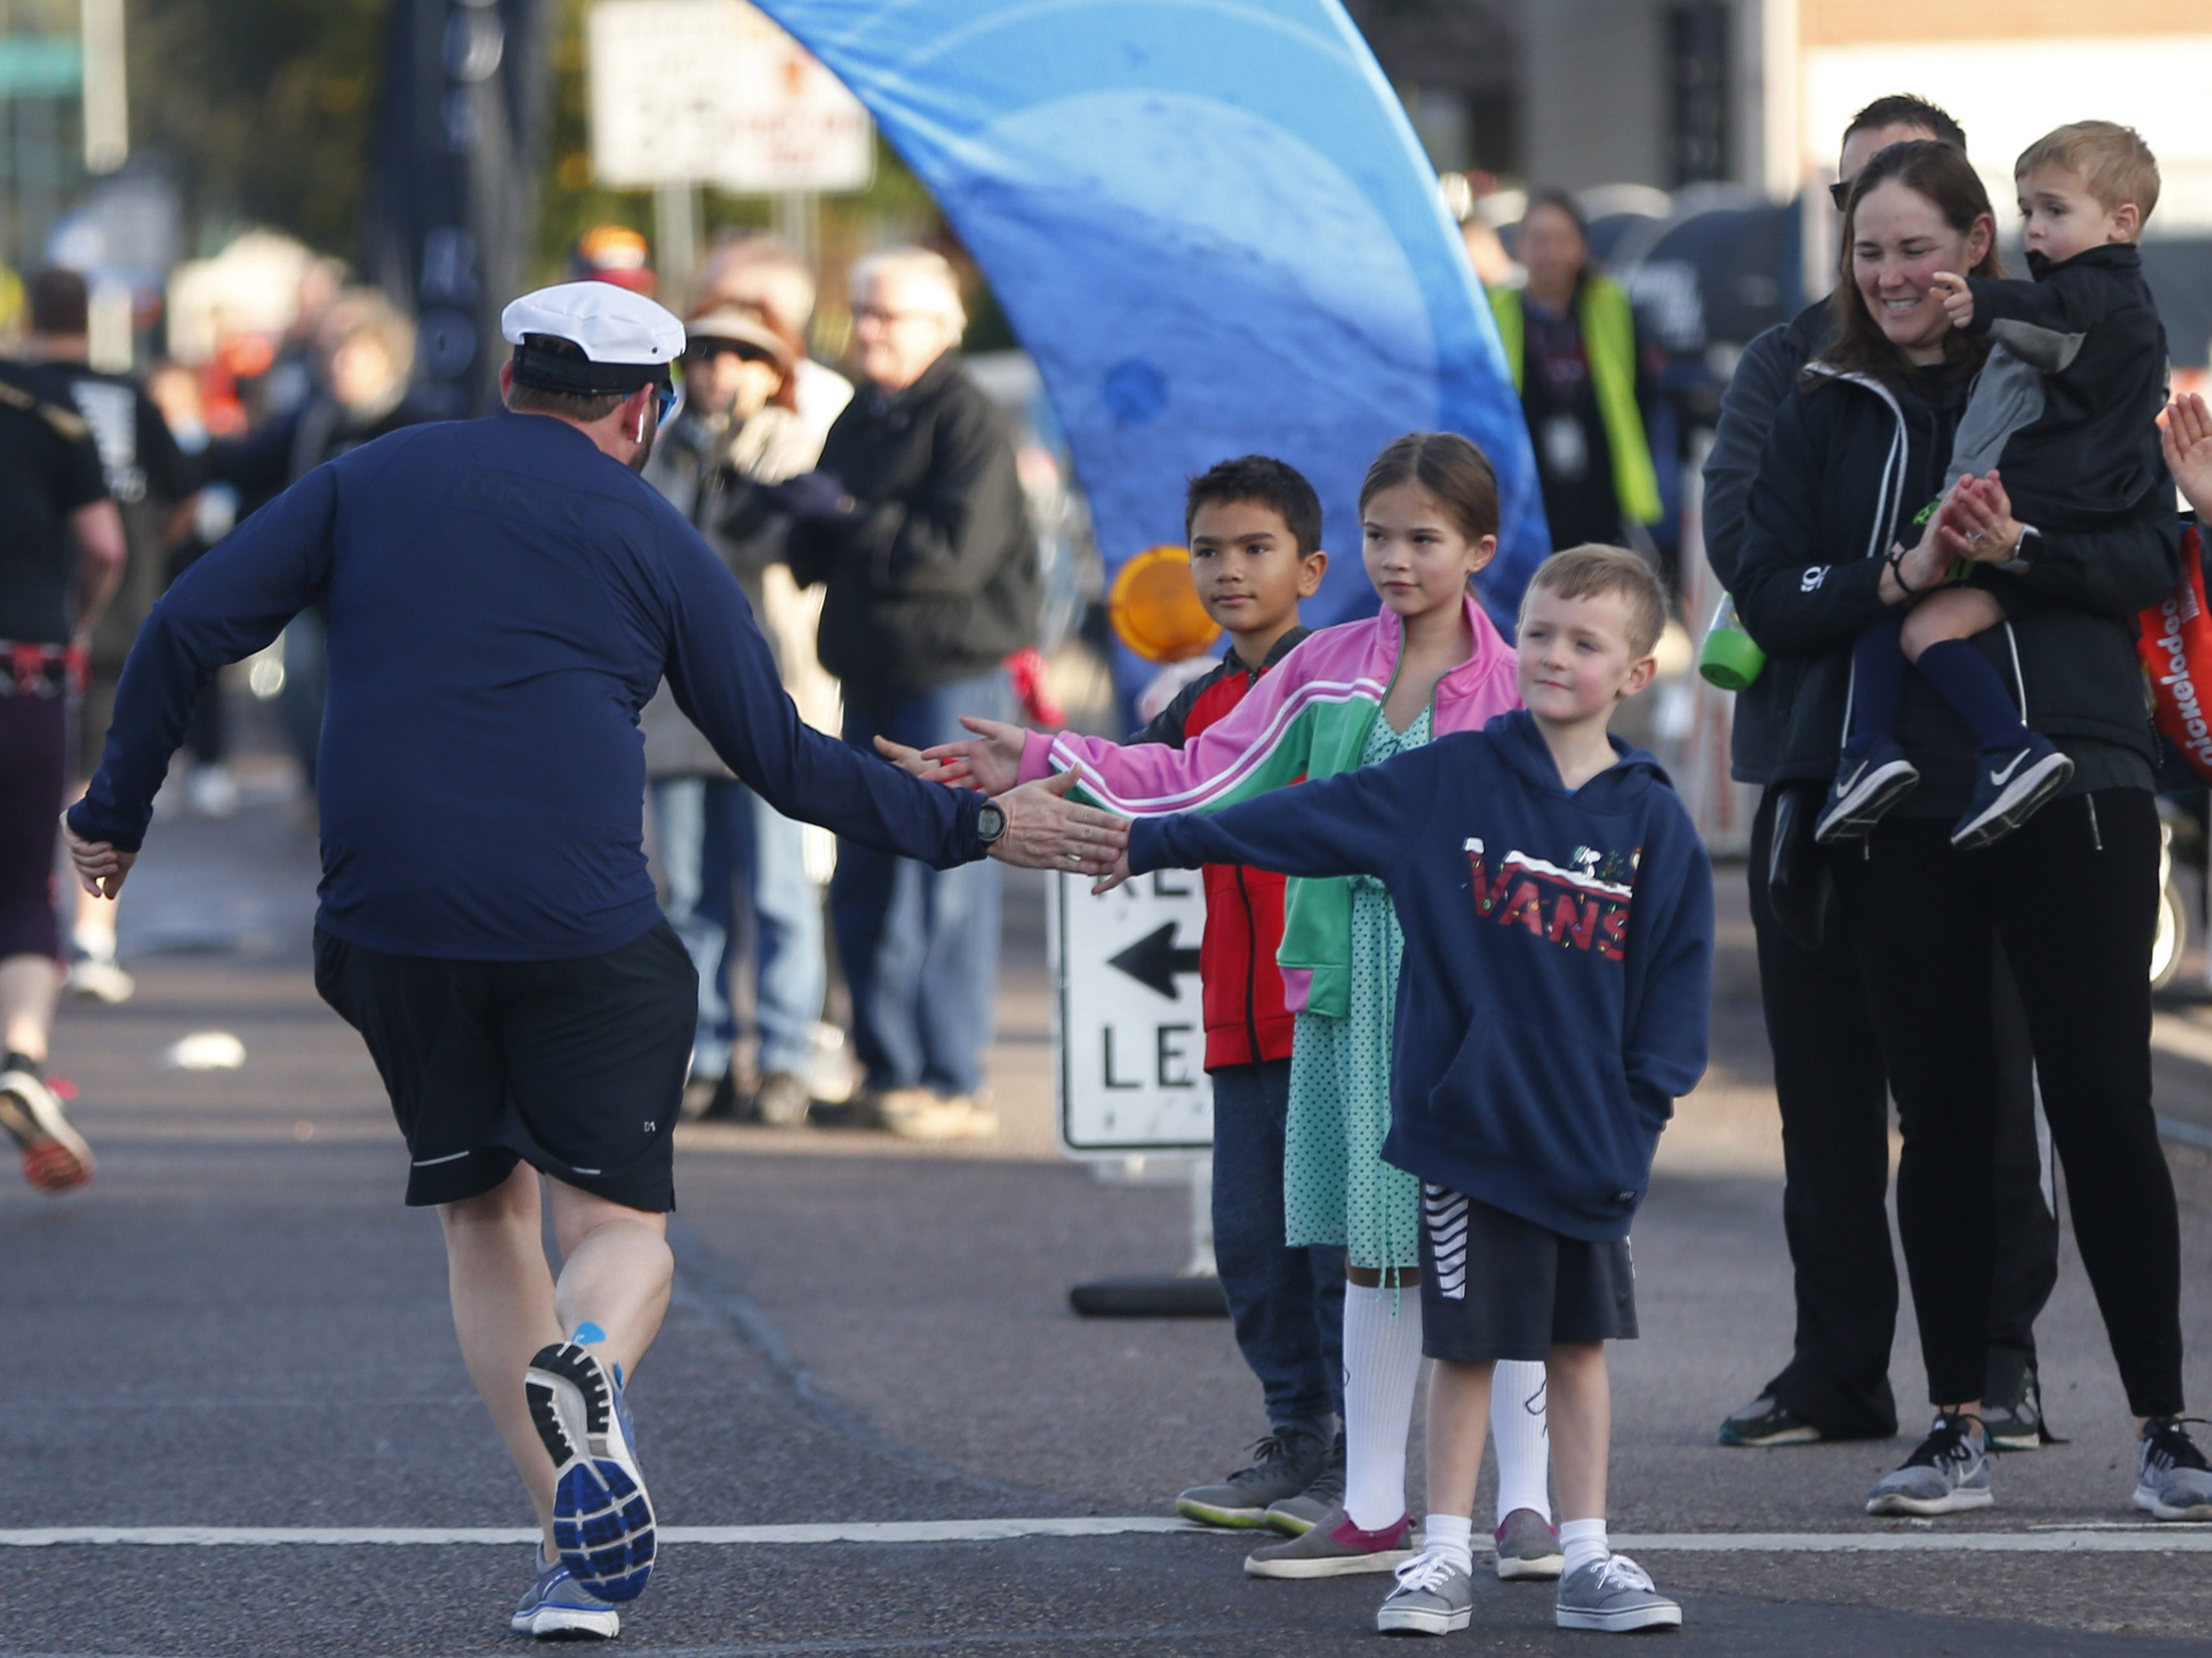 Spectators greet runners on 7th Ave. during the Rock 'N' Roll Marathon in Phoenix on Jan. 20, 2019.